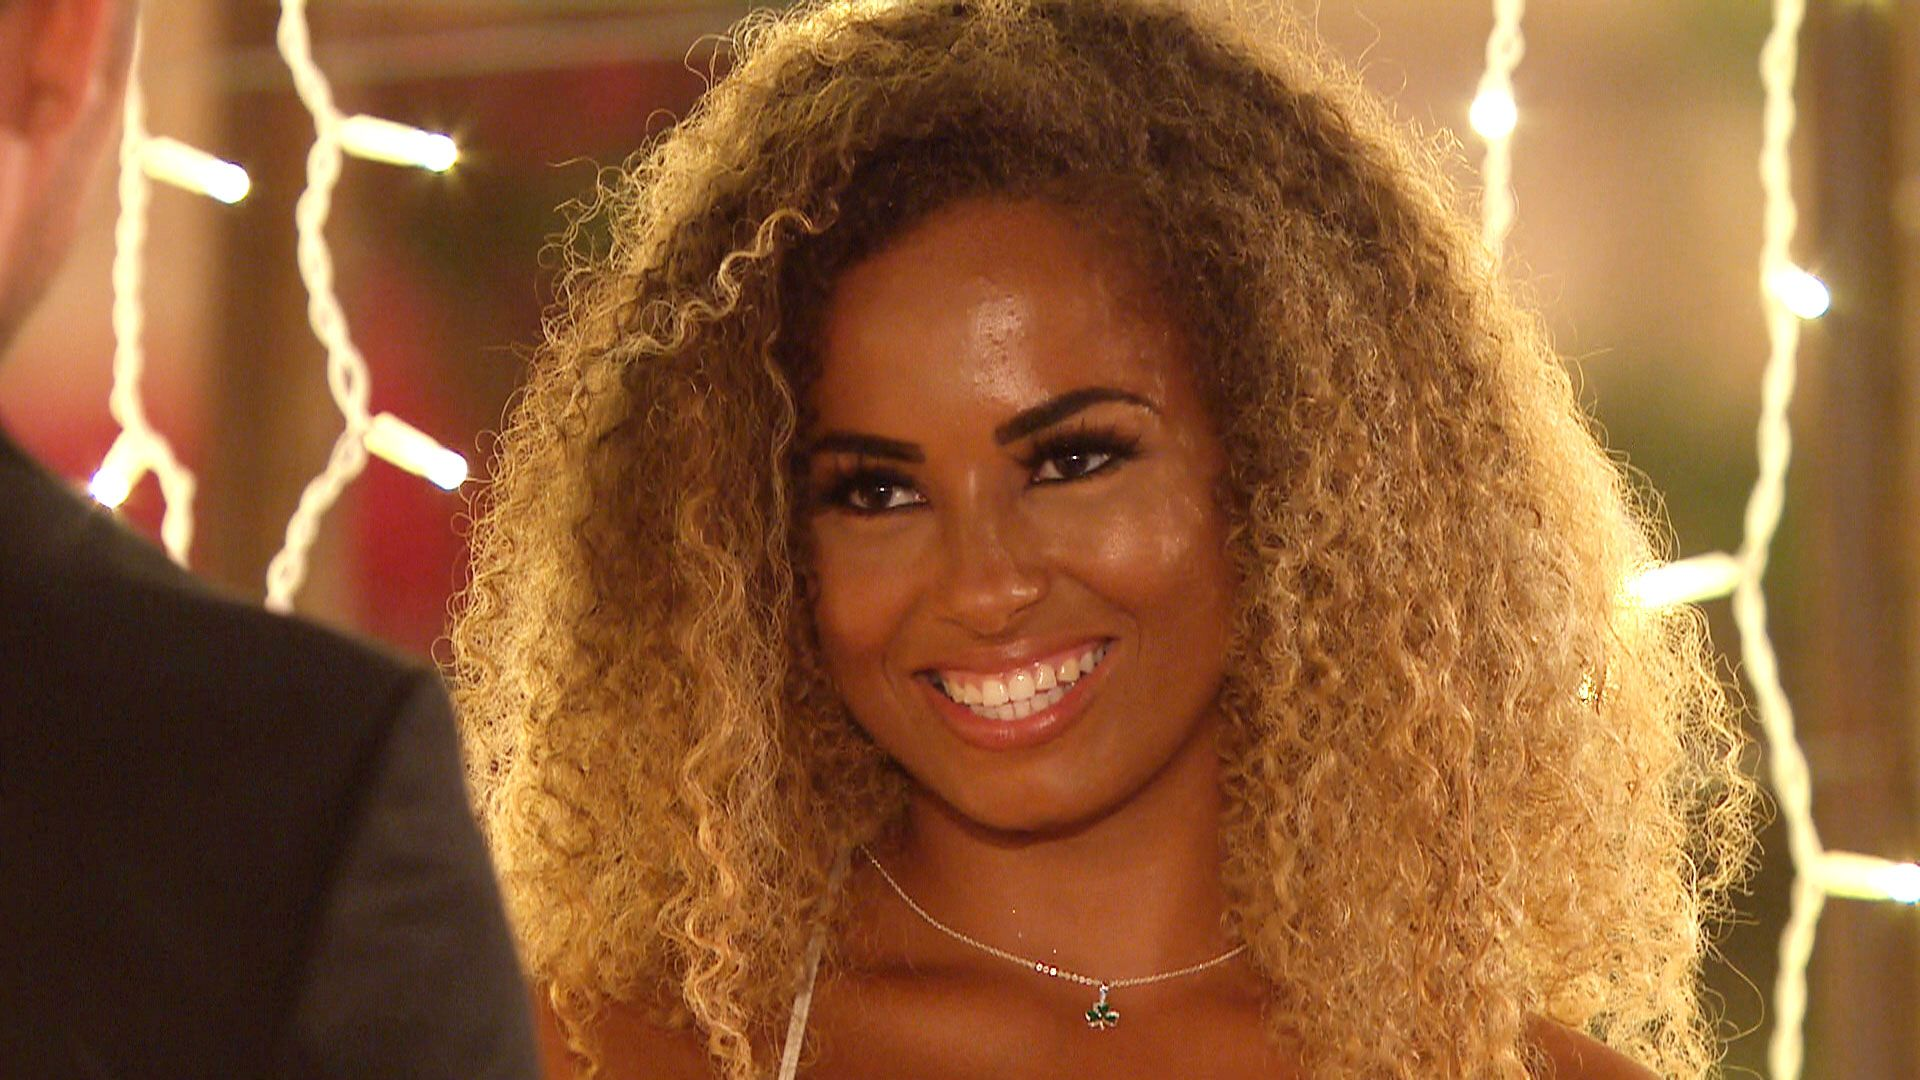 Love Island's Amber Gill addresses Dancing on Ice rumours